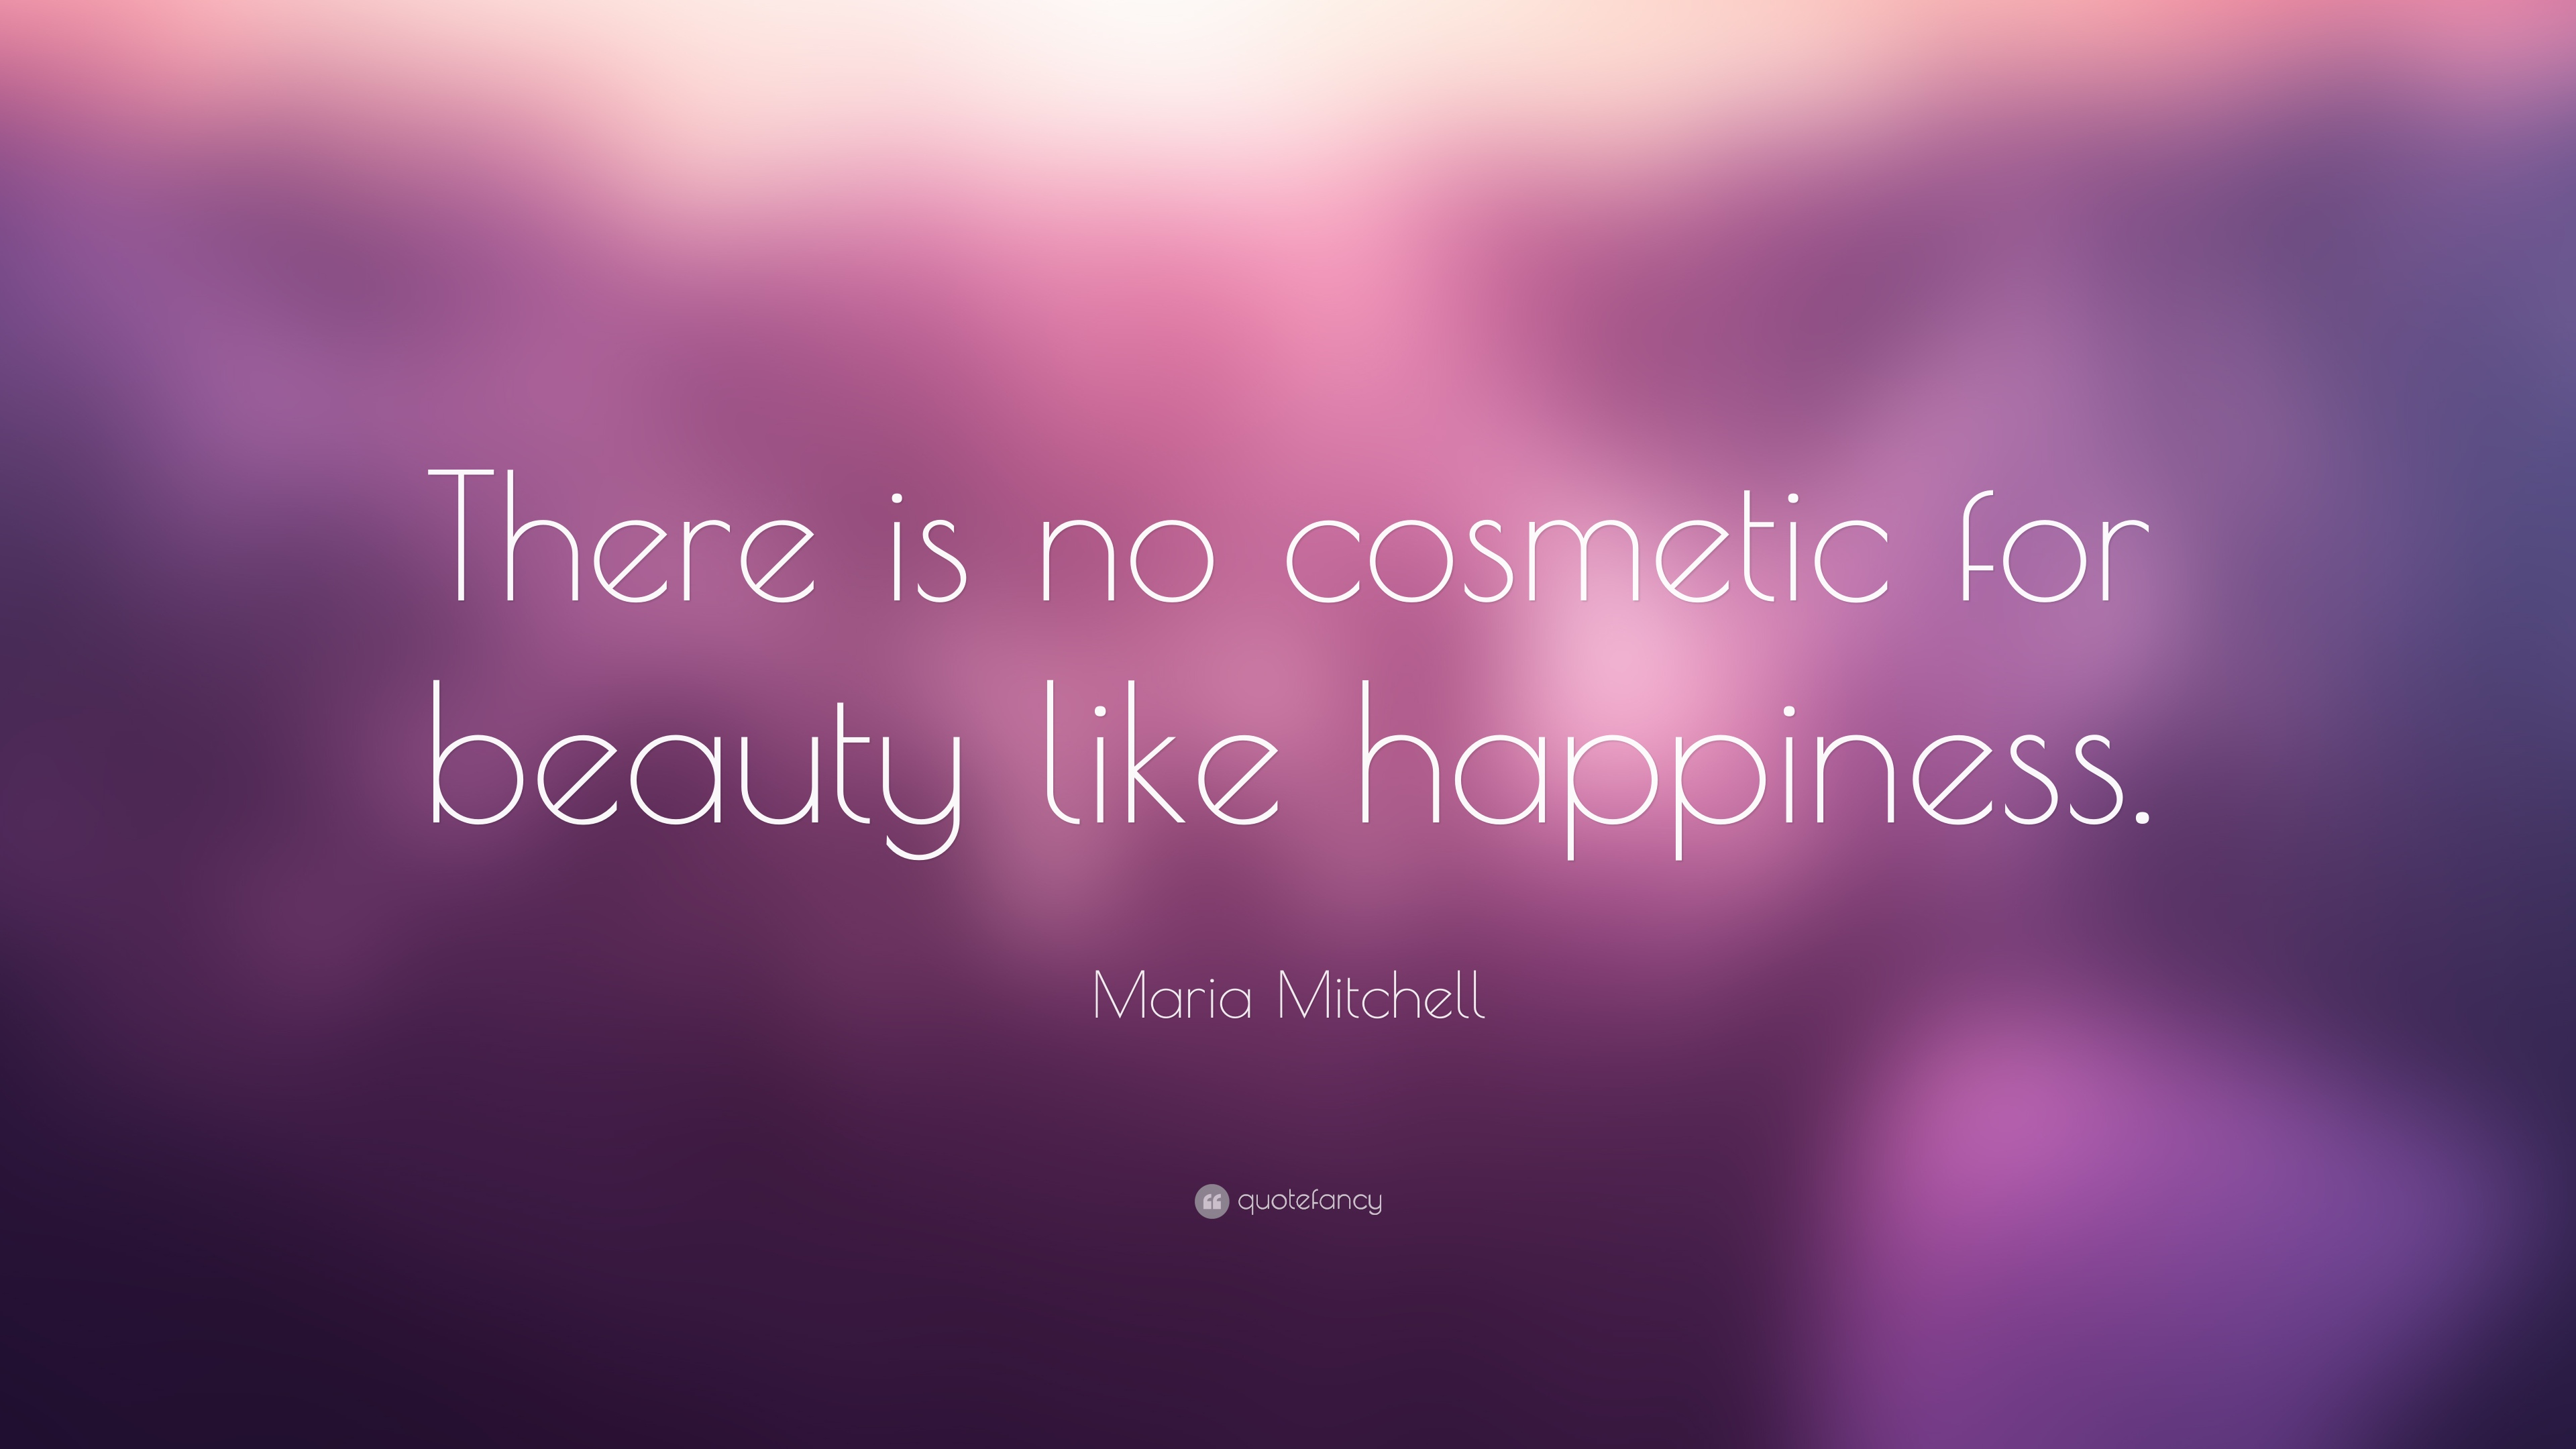 Quotes About Happiness Glamorous Maria Mitchell Quotes 45 Wallpapers  Quotefancy